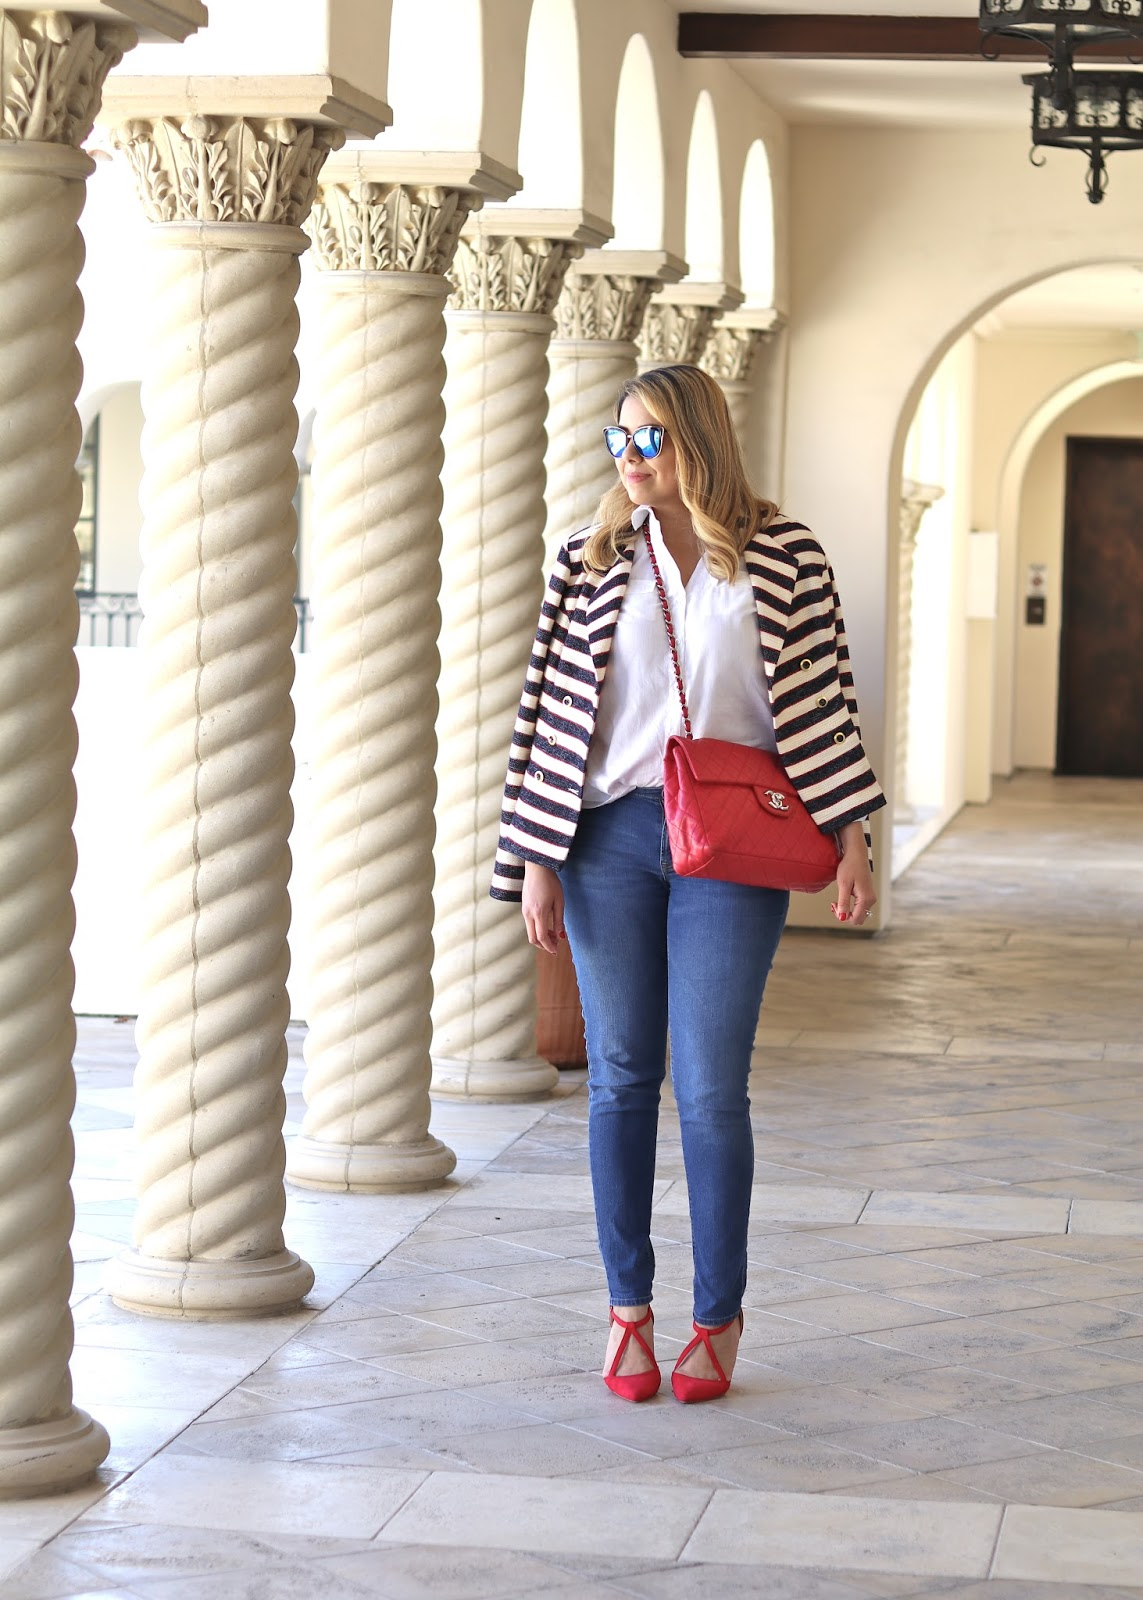 San Diego fashion blogger, Red Chanel handbag outfit, nautical striped blazer, cabi fashion blogger, cabi 2016 spring collection